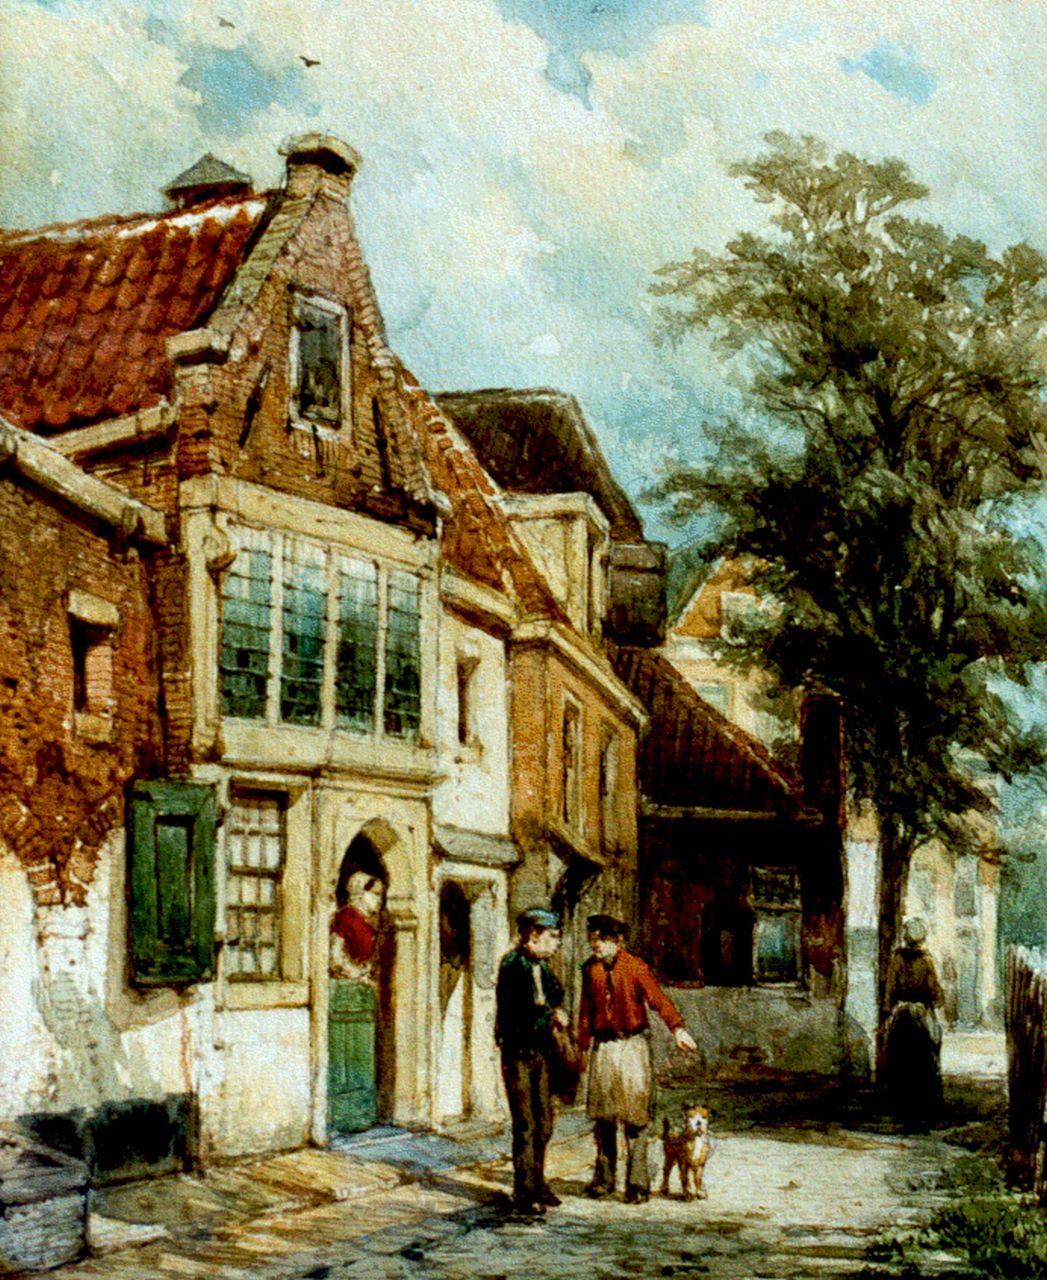 Springer C.  | Cornelis Springer, A view of Hoorn, watercolour on paper 25.1 x 20.6 cm, signed l.l. and dated Dec. '77